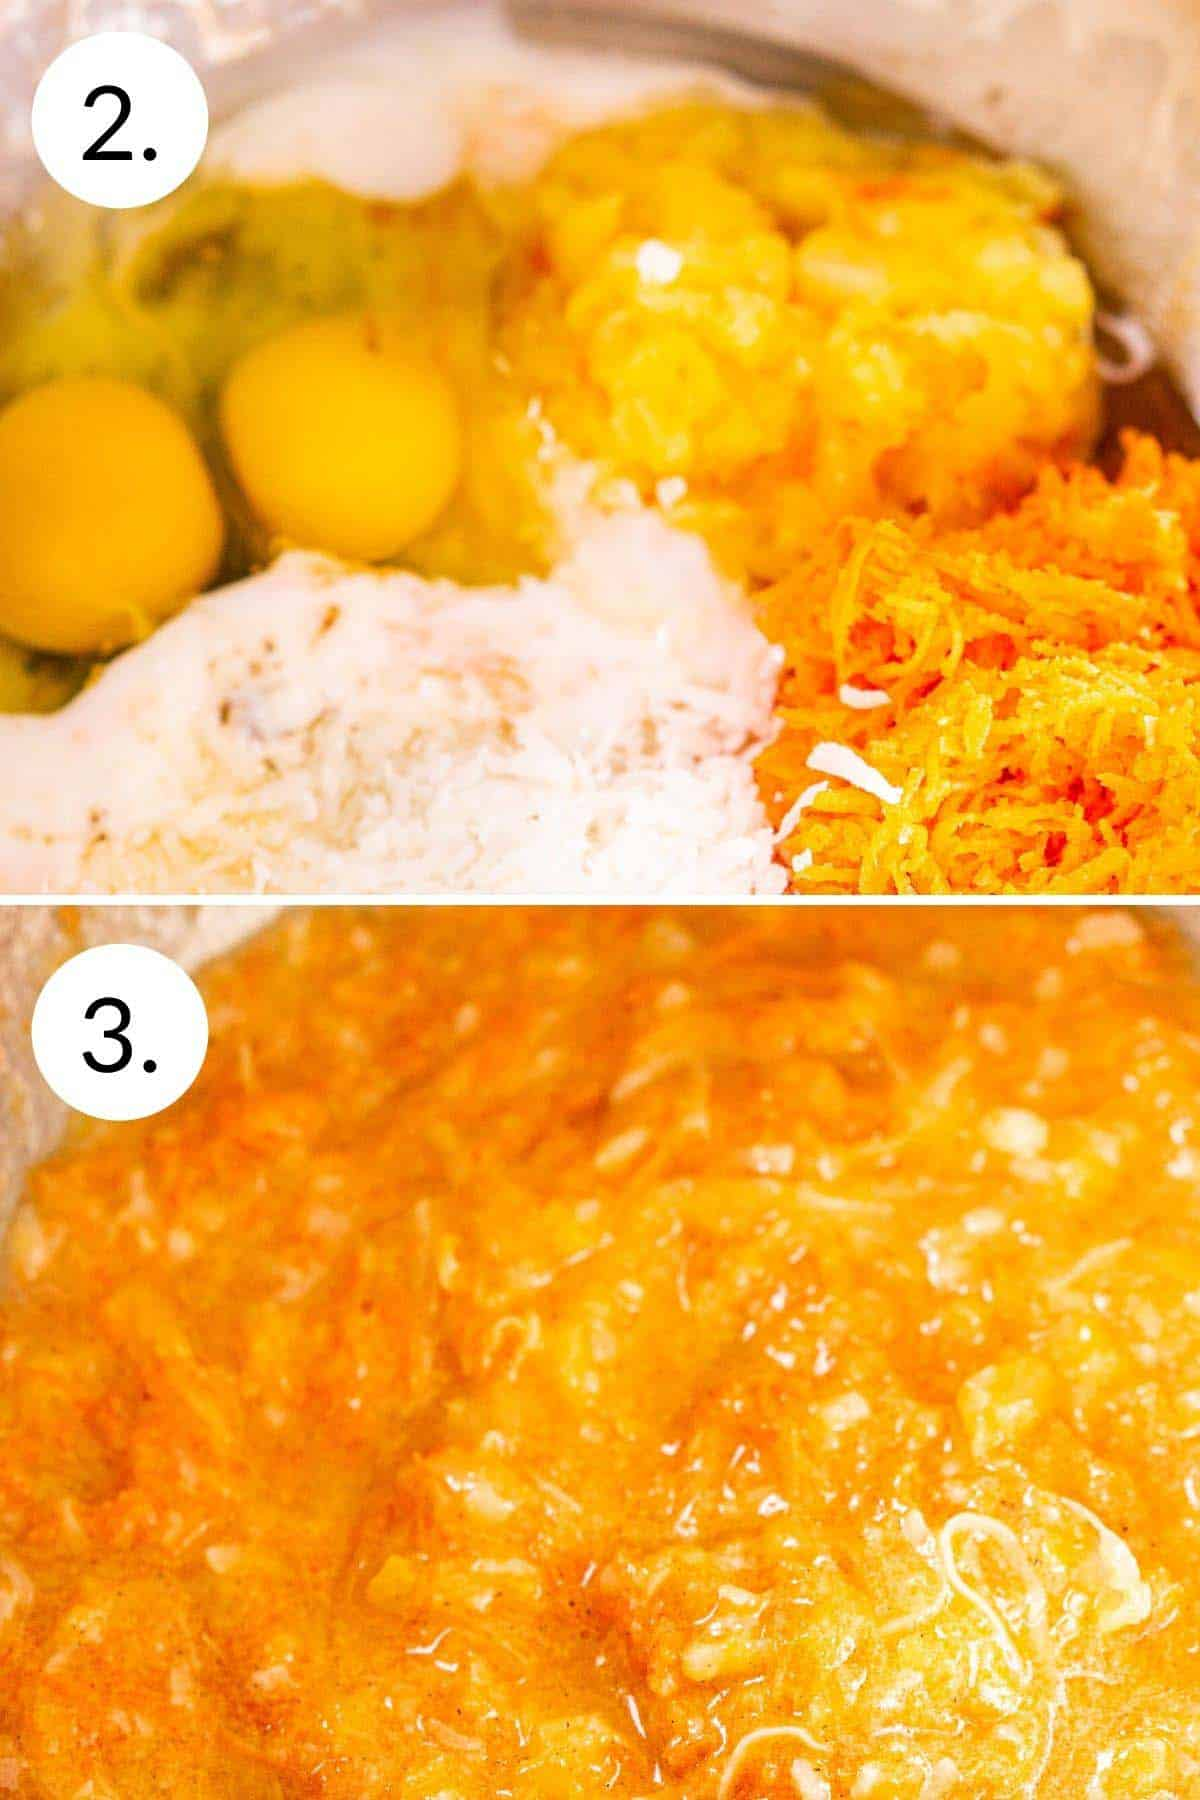 A collage showing the process of whisking the wet ingredients into one cohesive mixture.